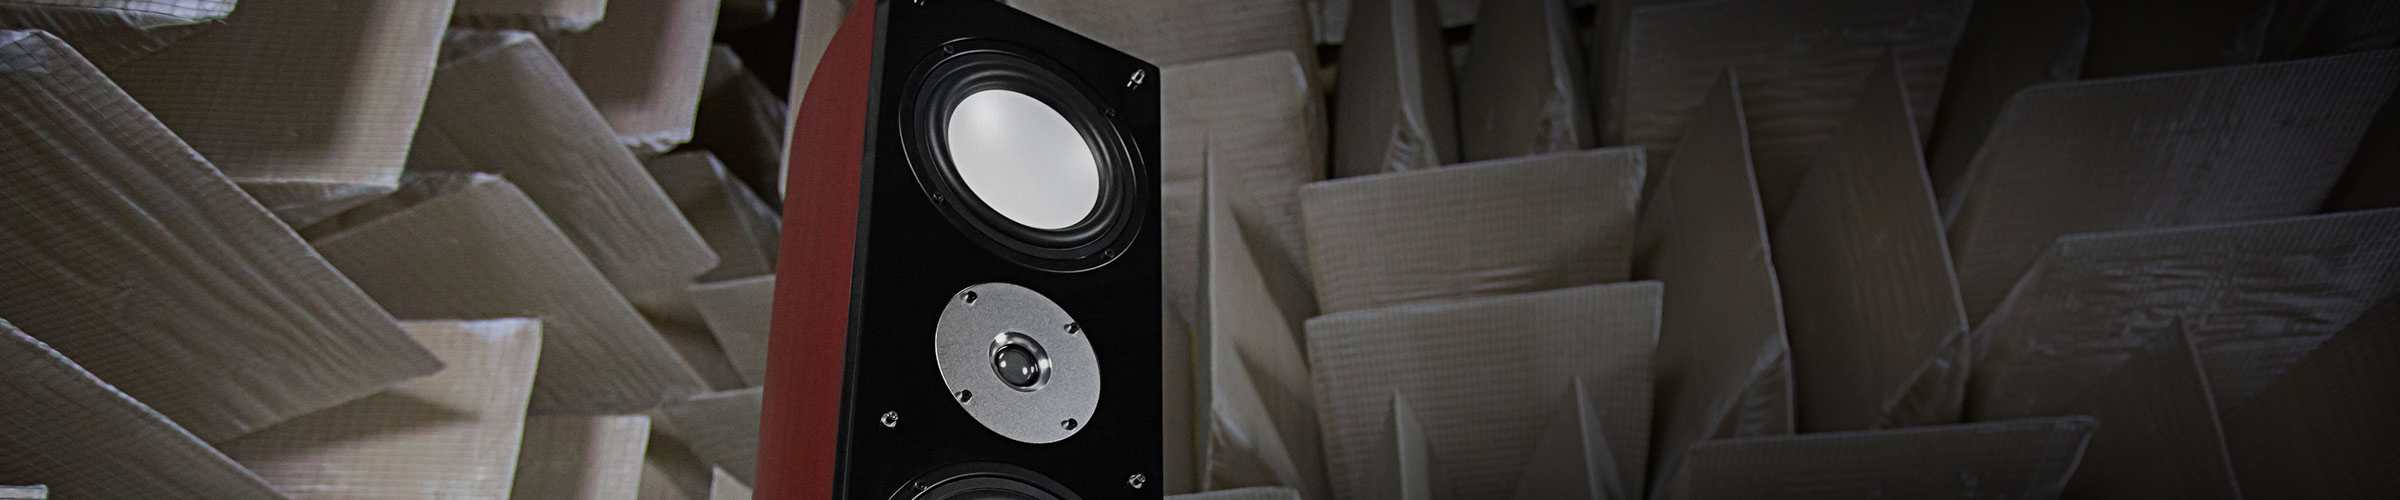 XL70RXS-DW-KIT floorstanding speaker